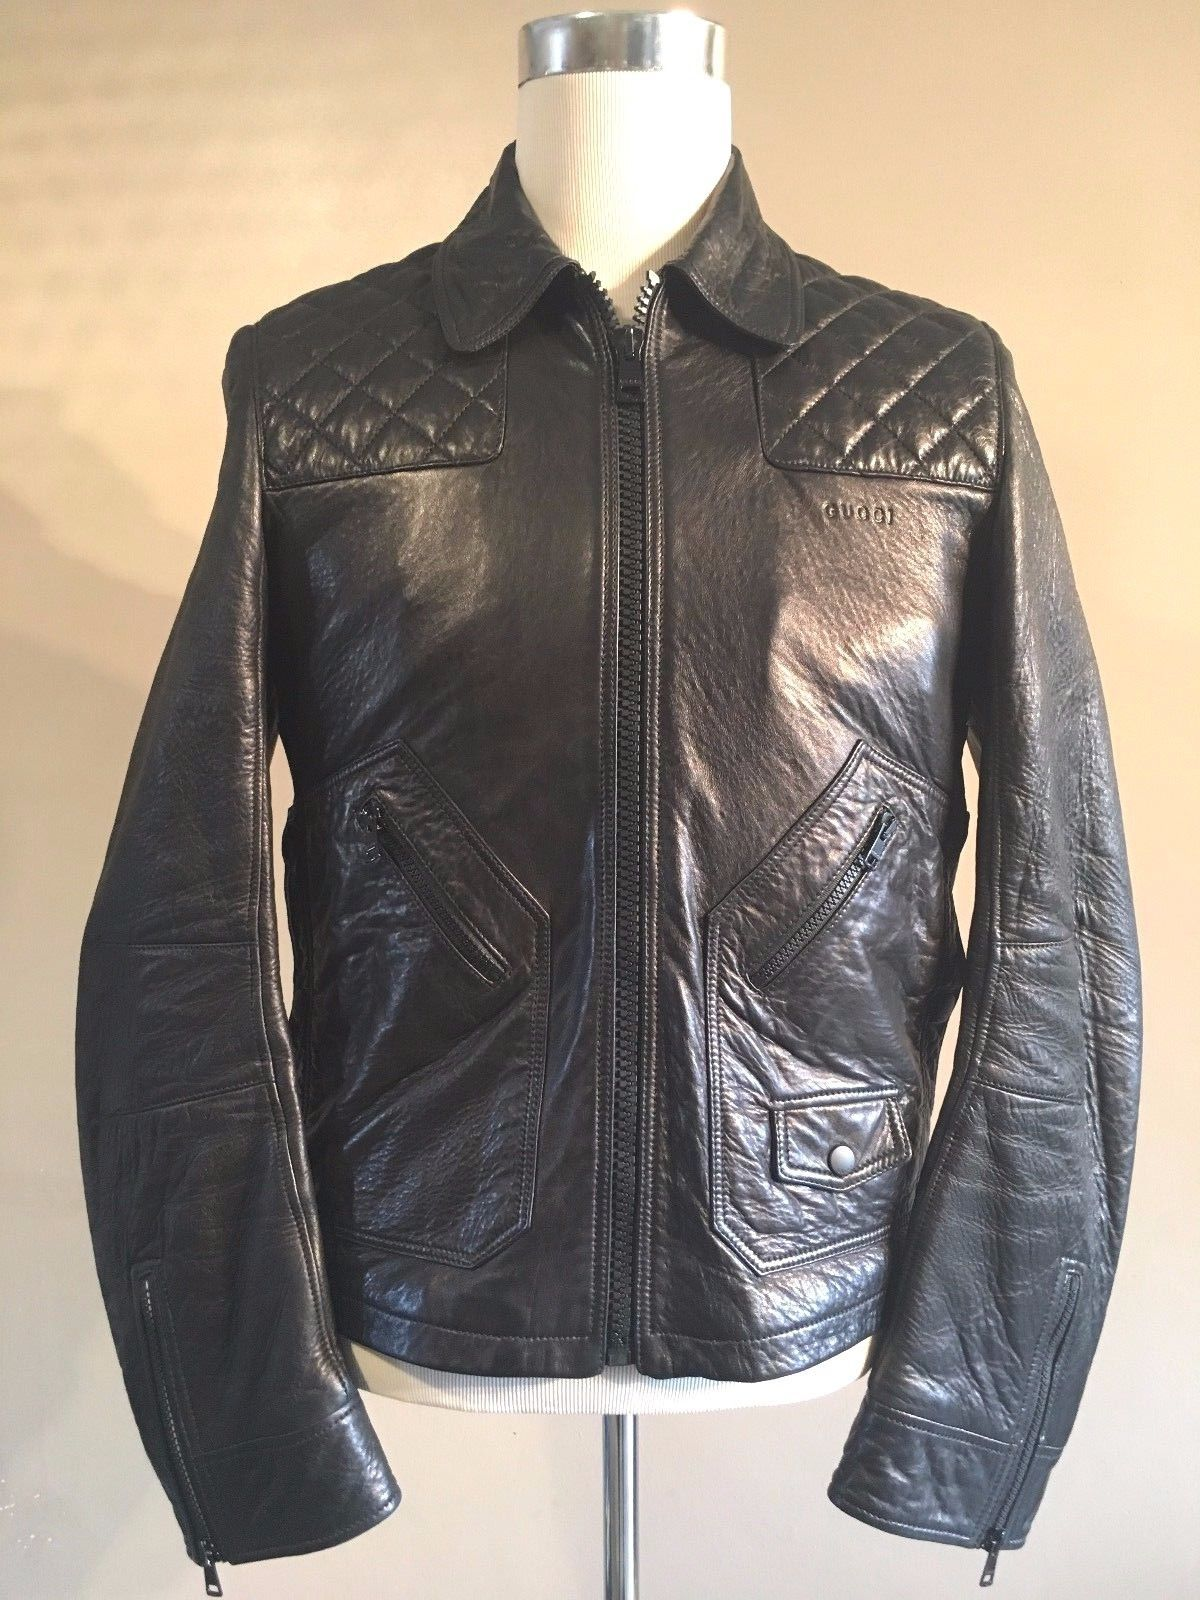 Gucci Black Leather Diamond Quilted Shoulder Biker Jacket M Rrp A3195 Stunning Gucci Black Black Leather Mens Outfits [ 1600 x 1200 Pixel ]